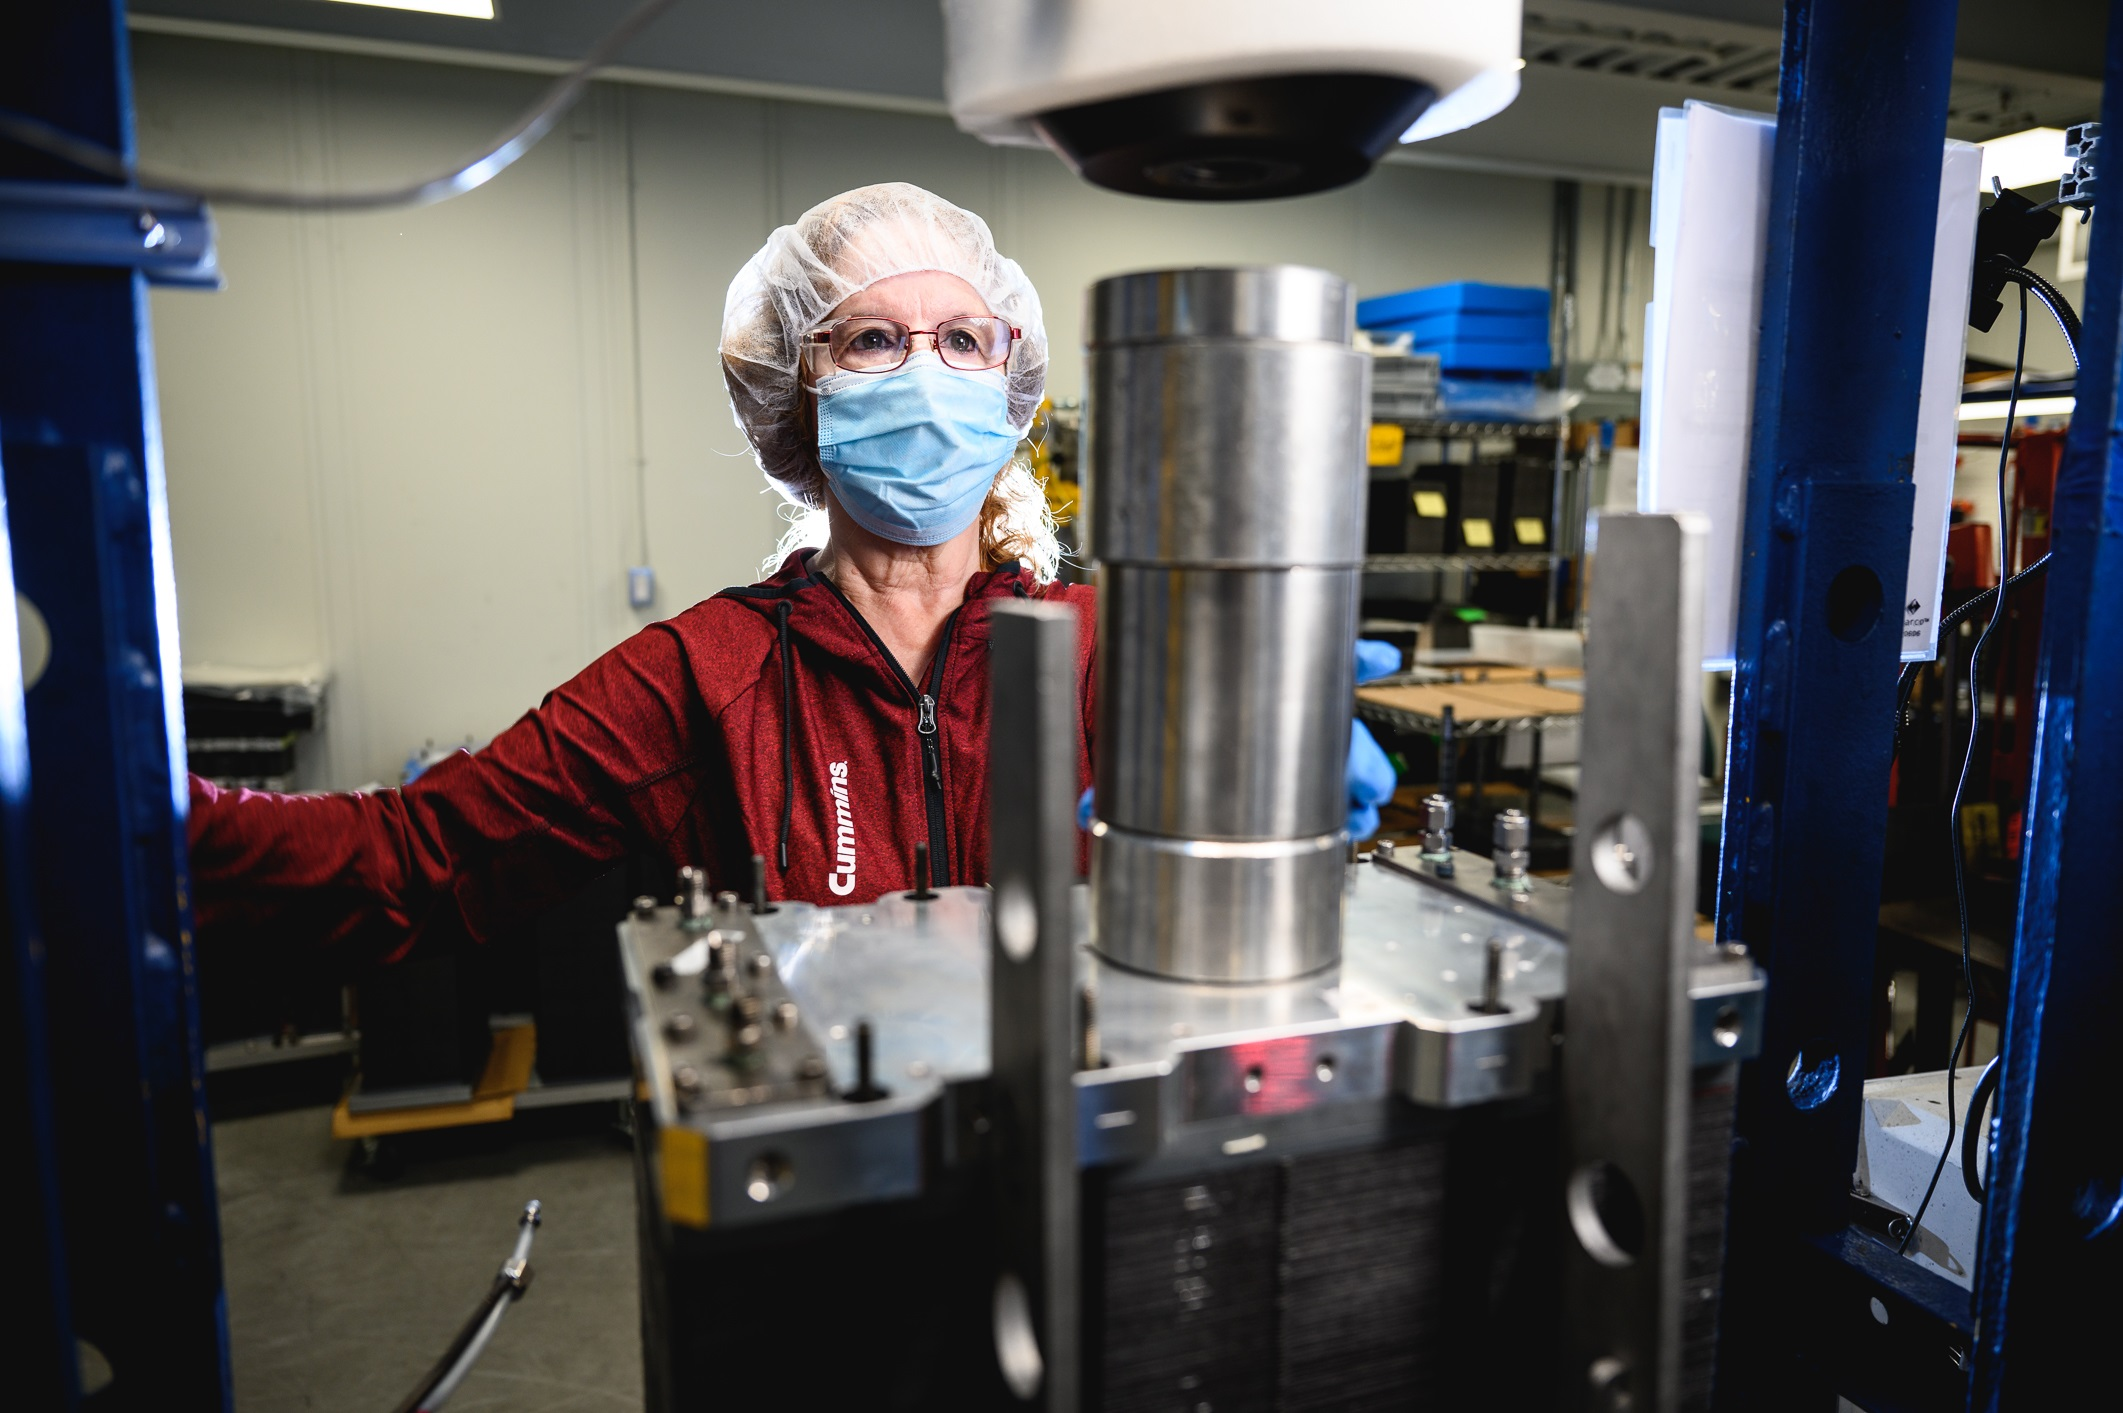 An employee works at the Cummins Mississauga Fuel Cell & Hydrogen Technologies facility in Ontario, Canada. The facility builds low-carbon fuel cells for multiple applications and electrolyzers that produce hydrogen.